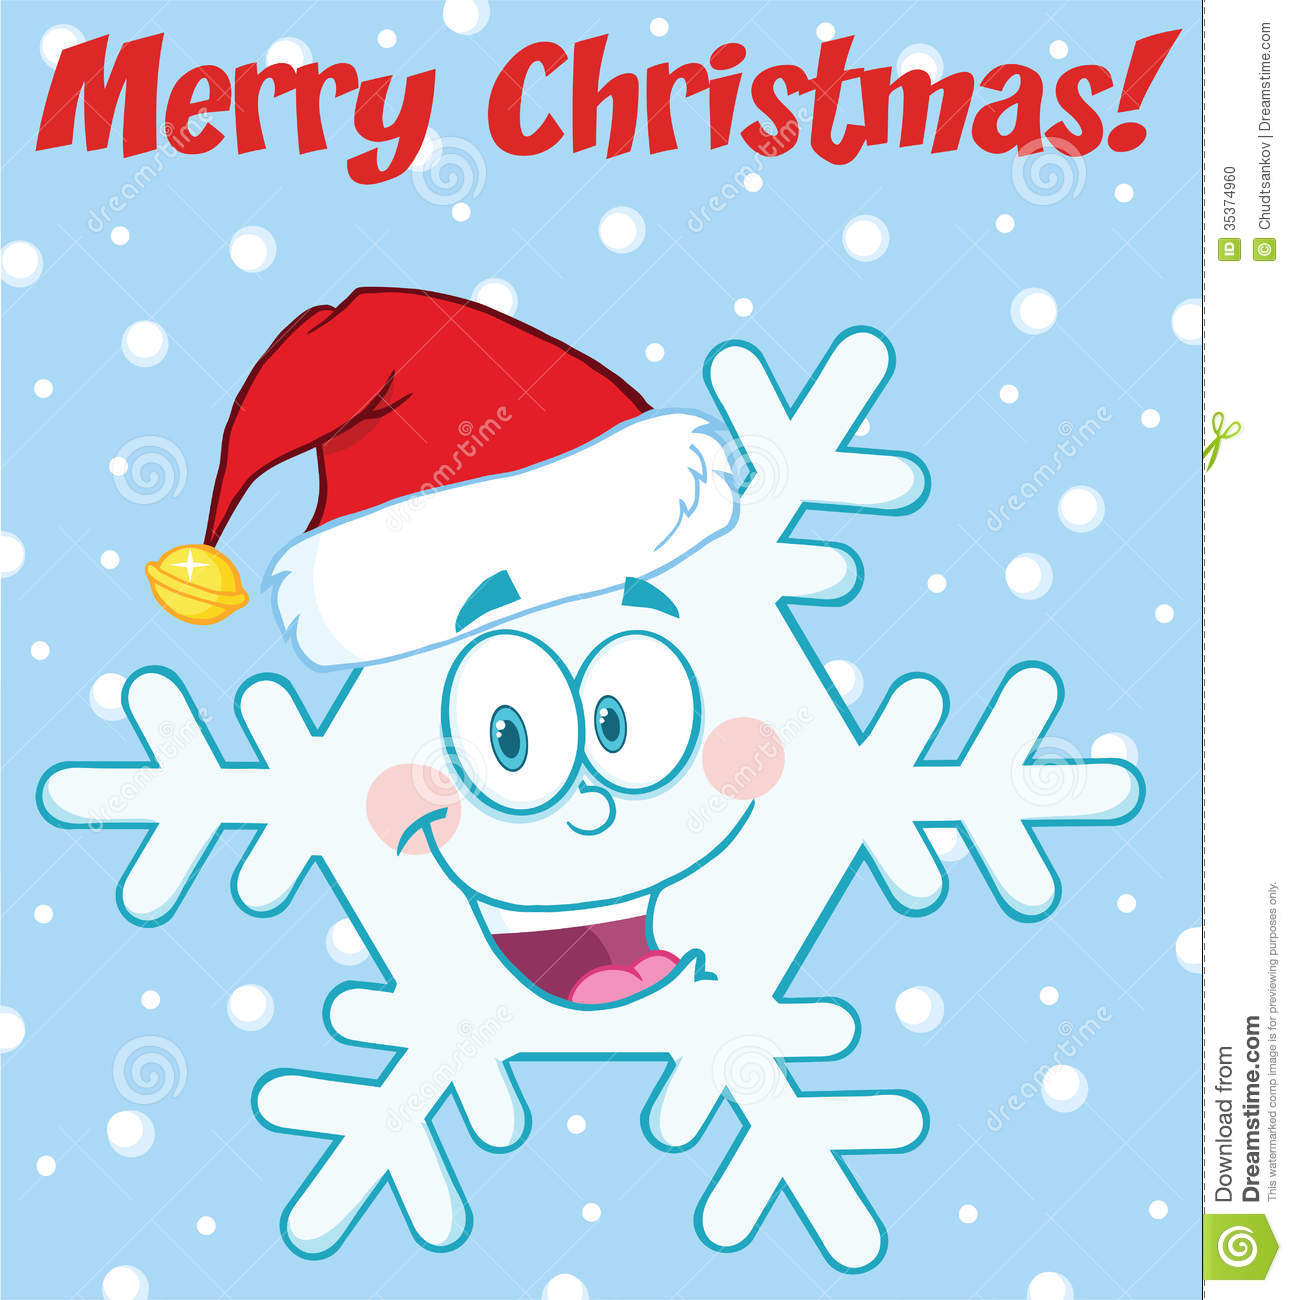 Merry christmas greeting snowflake cartoon character with